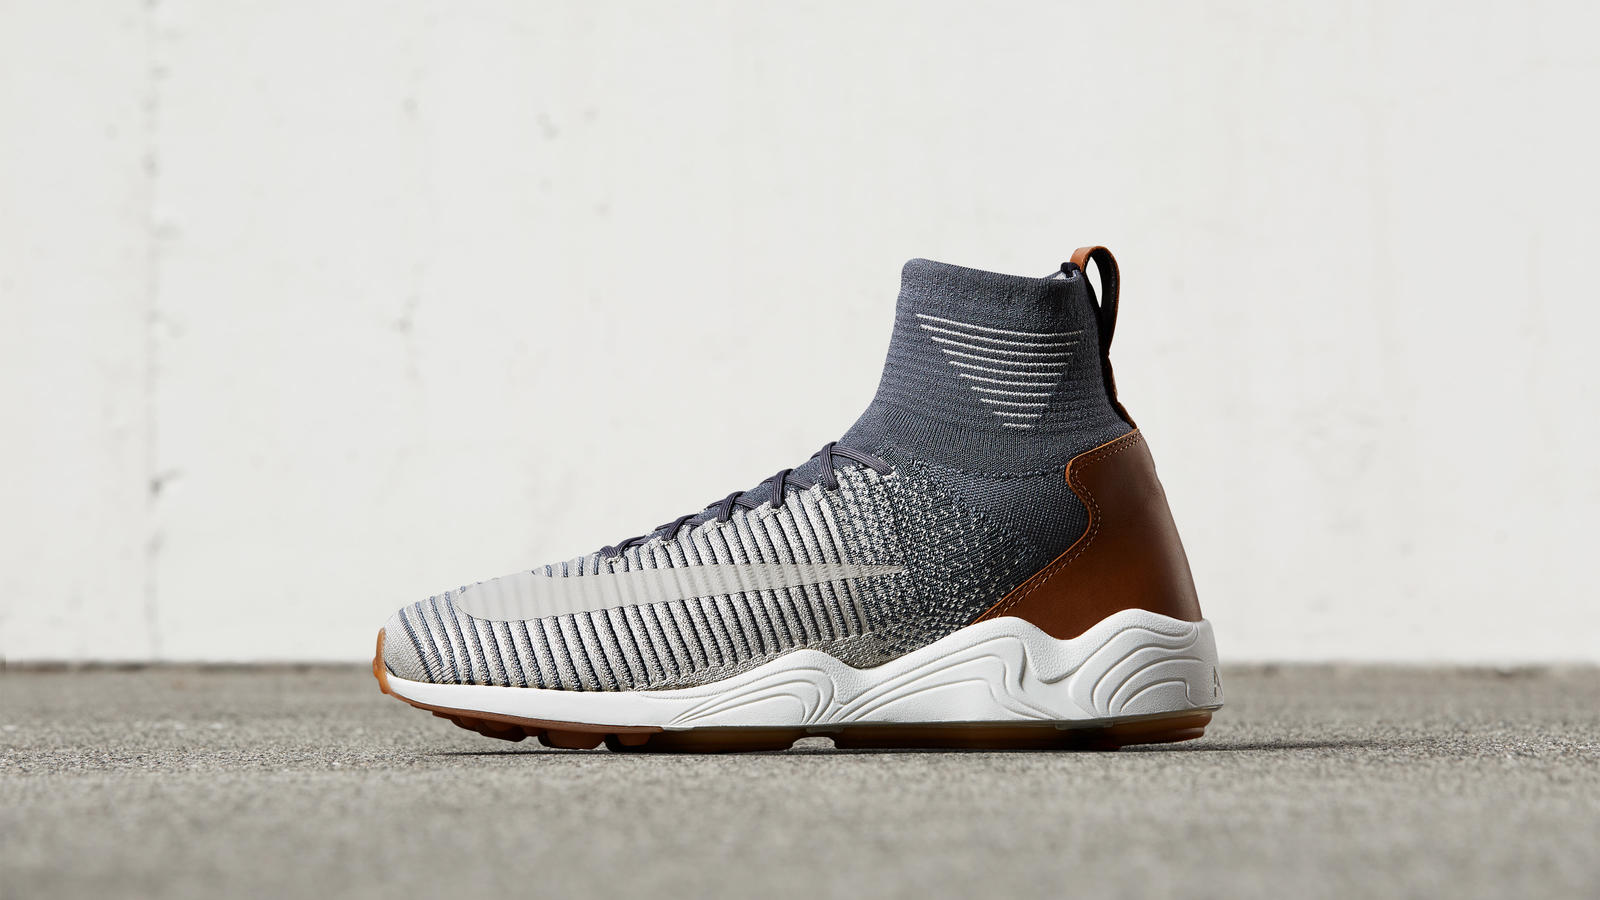 Nike Zoom Mercurial Flyknit Blue White